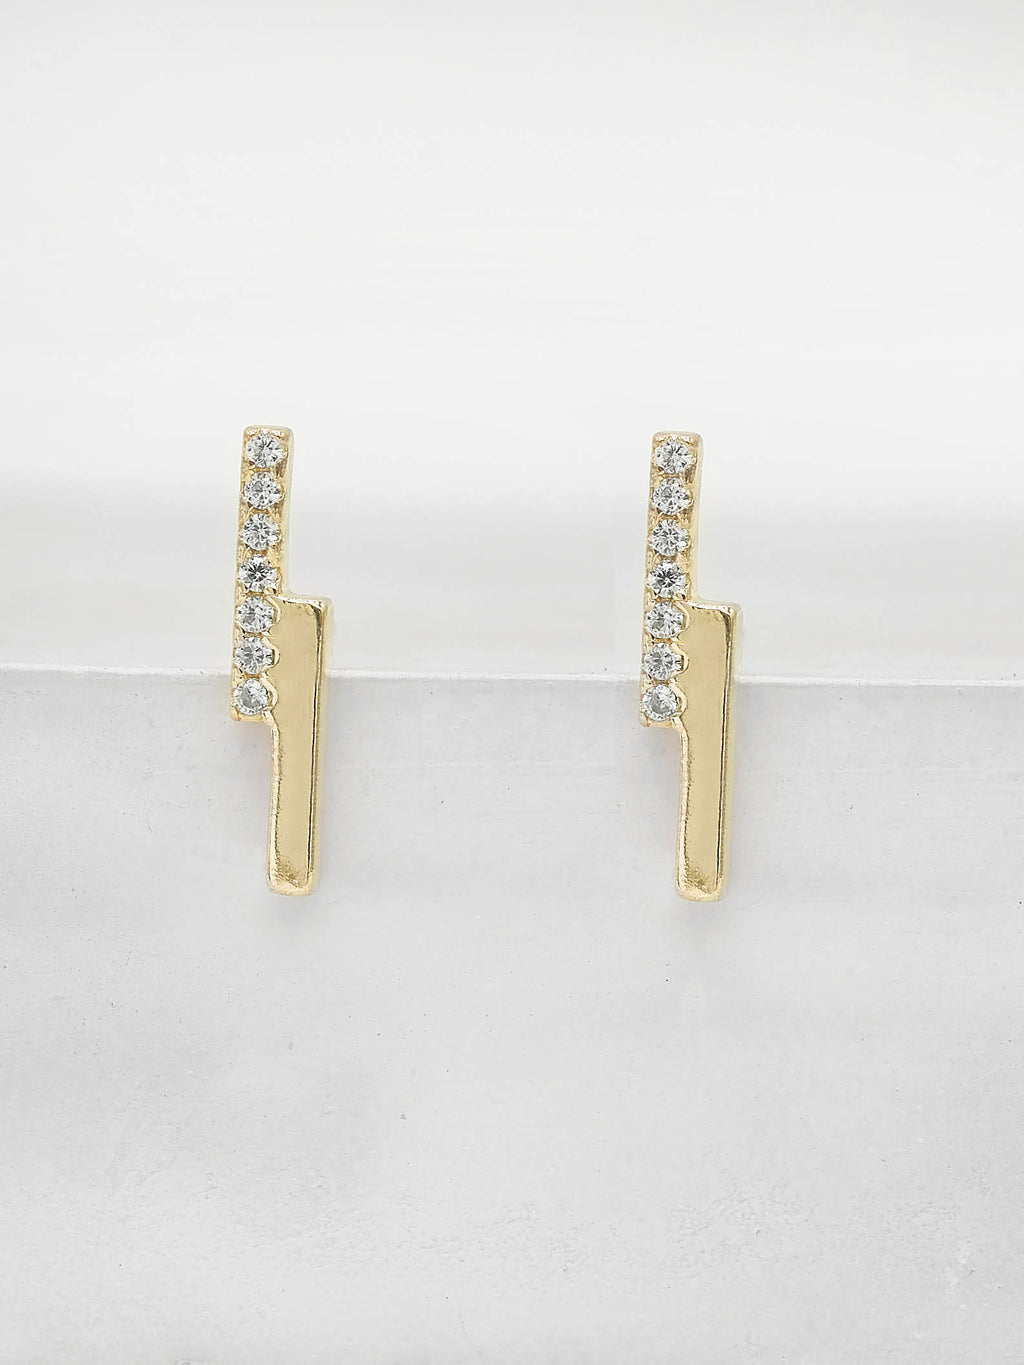 Mini Double Bar studs with Round white CZ Gold Plated Stud Earrings by The Faint Hearted Jewelry